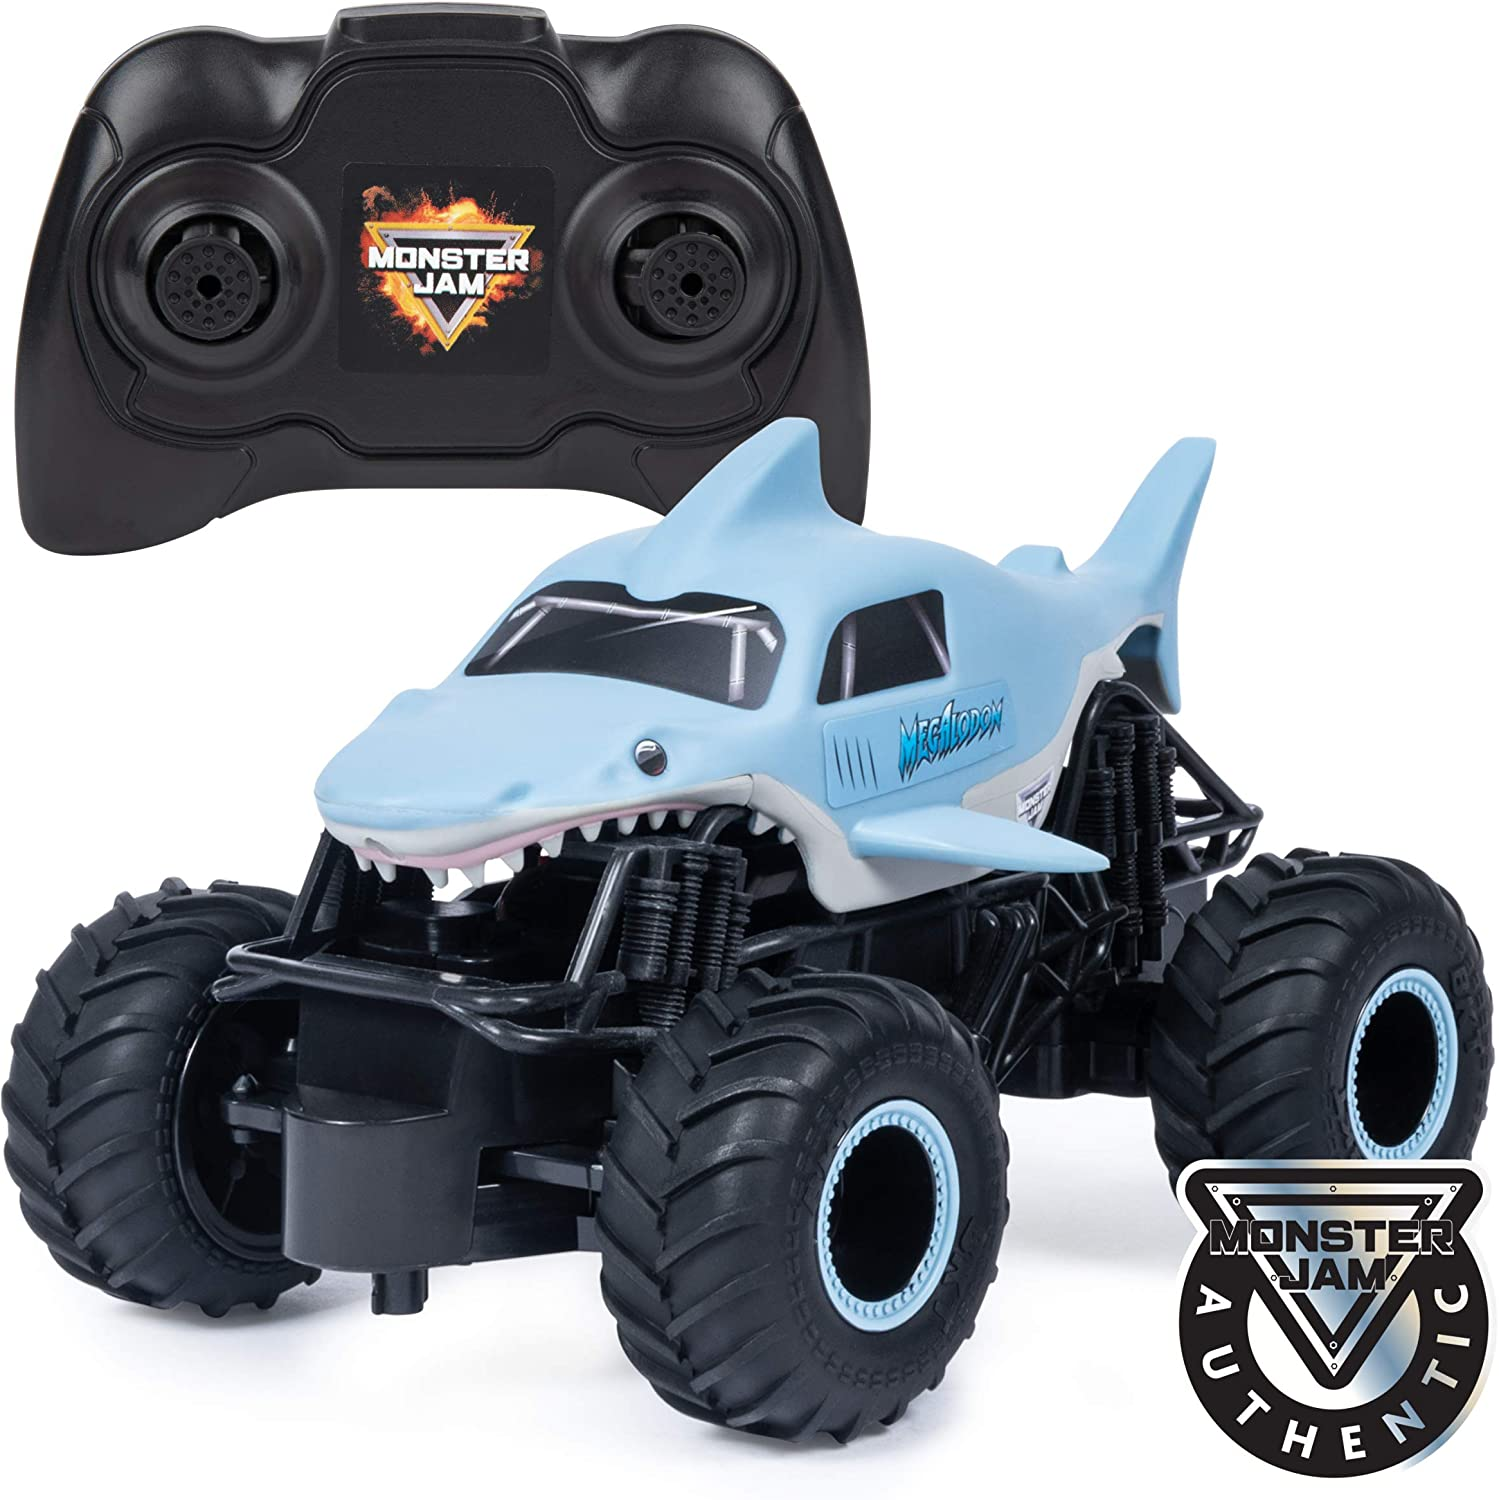 Amazon Com Monster Jam Official Megalodon Remote Control Monster Truck 1 24 Scale 2 4 Ghz For Ages 4 Up Toys Games